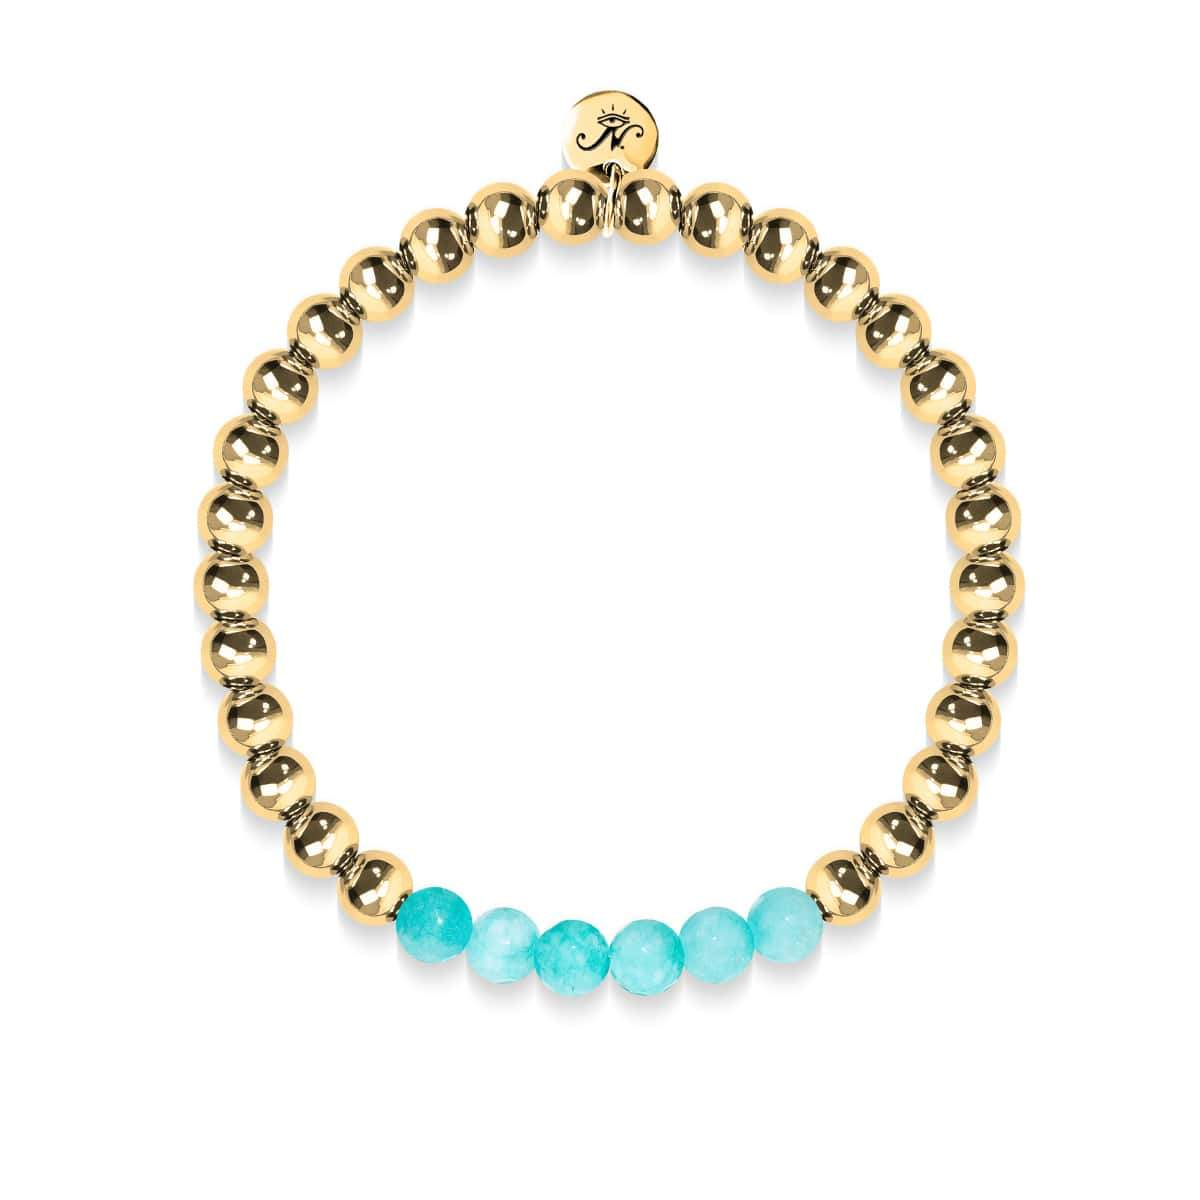 Cheerful | 18k Gold | Aquamarine Jade | Expression Bracelet